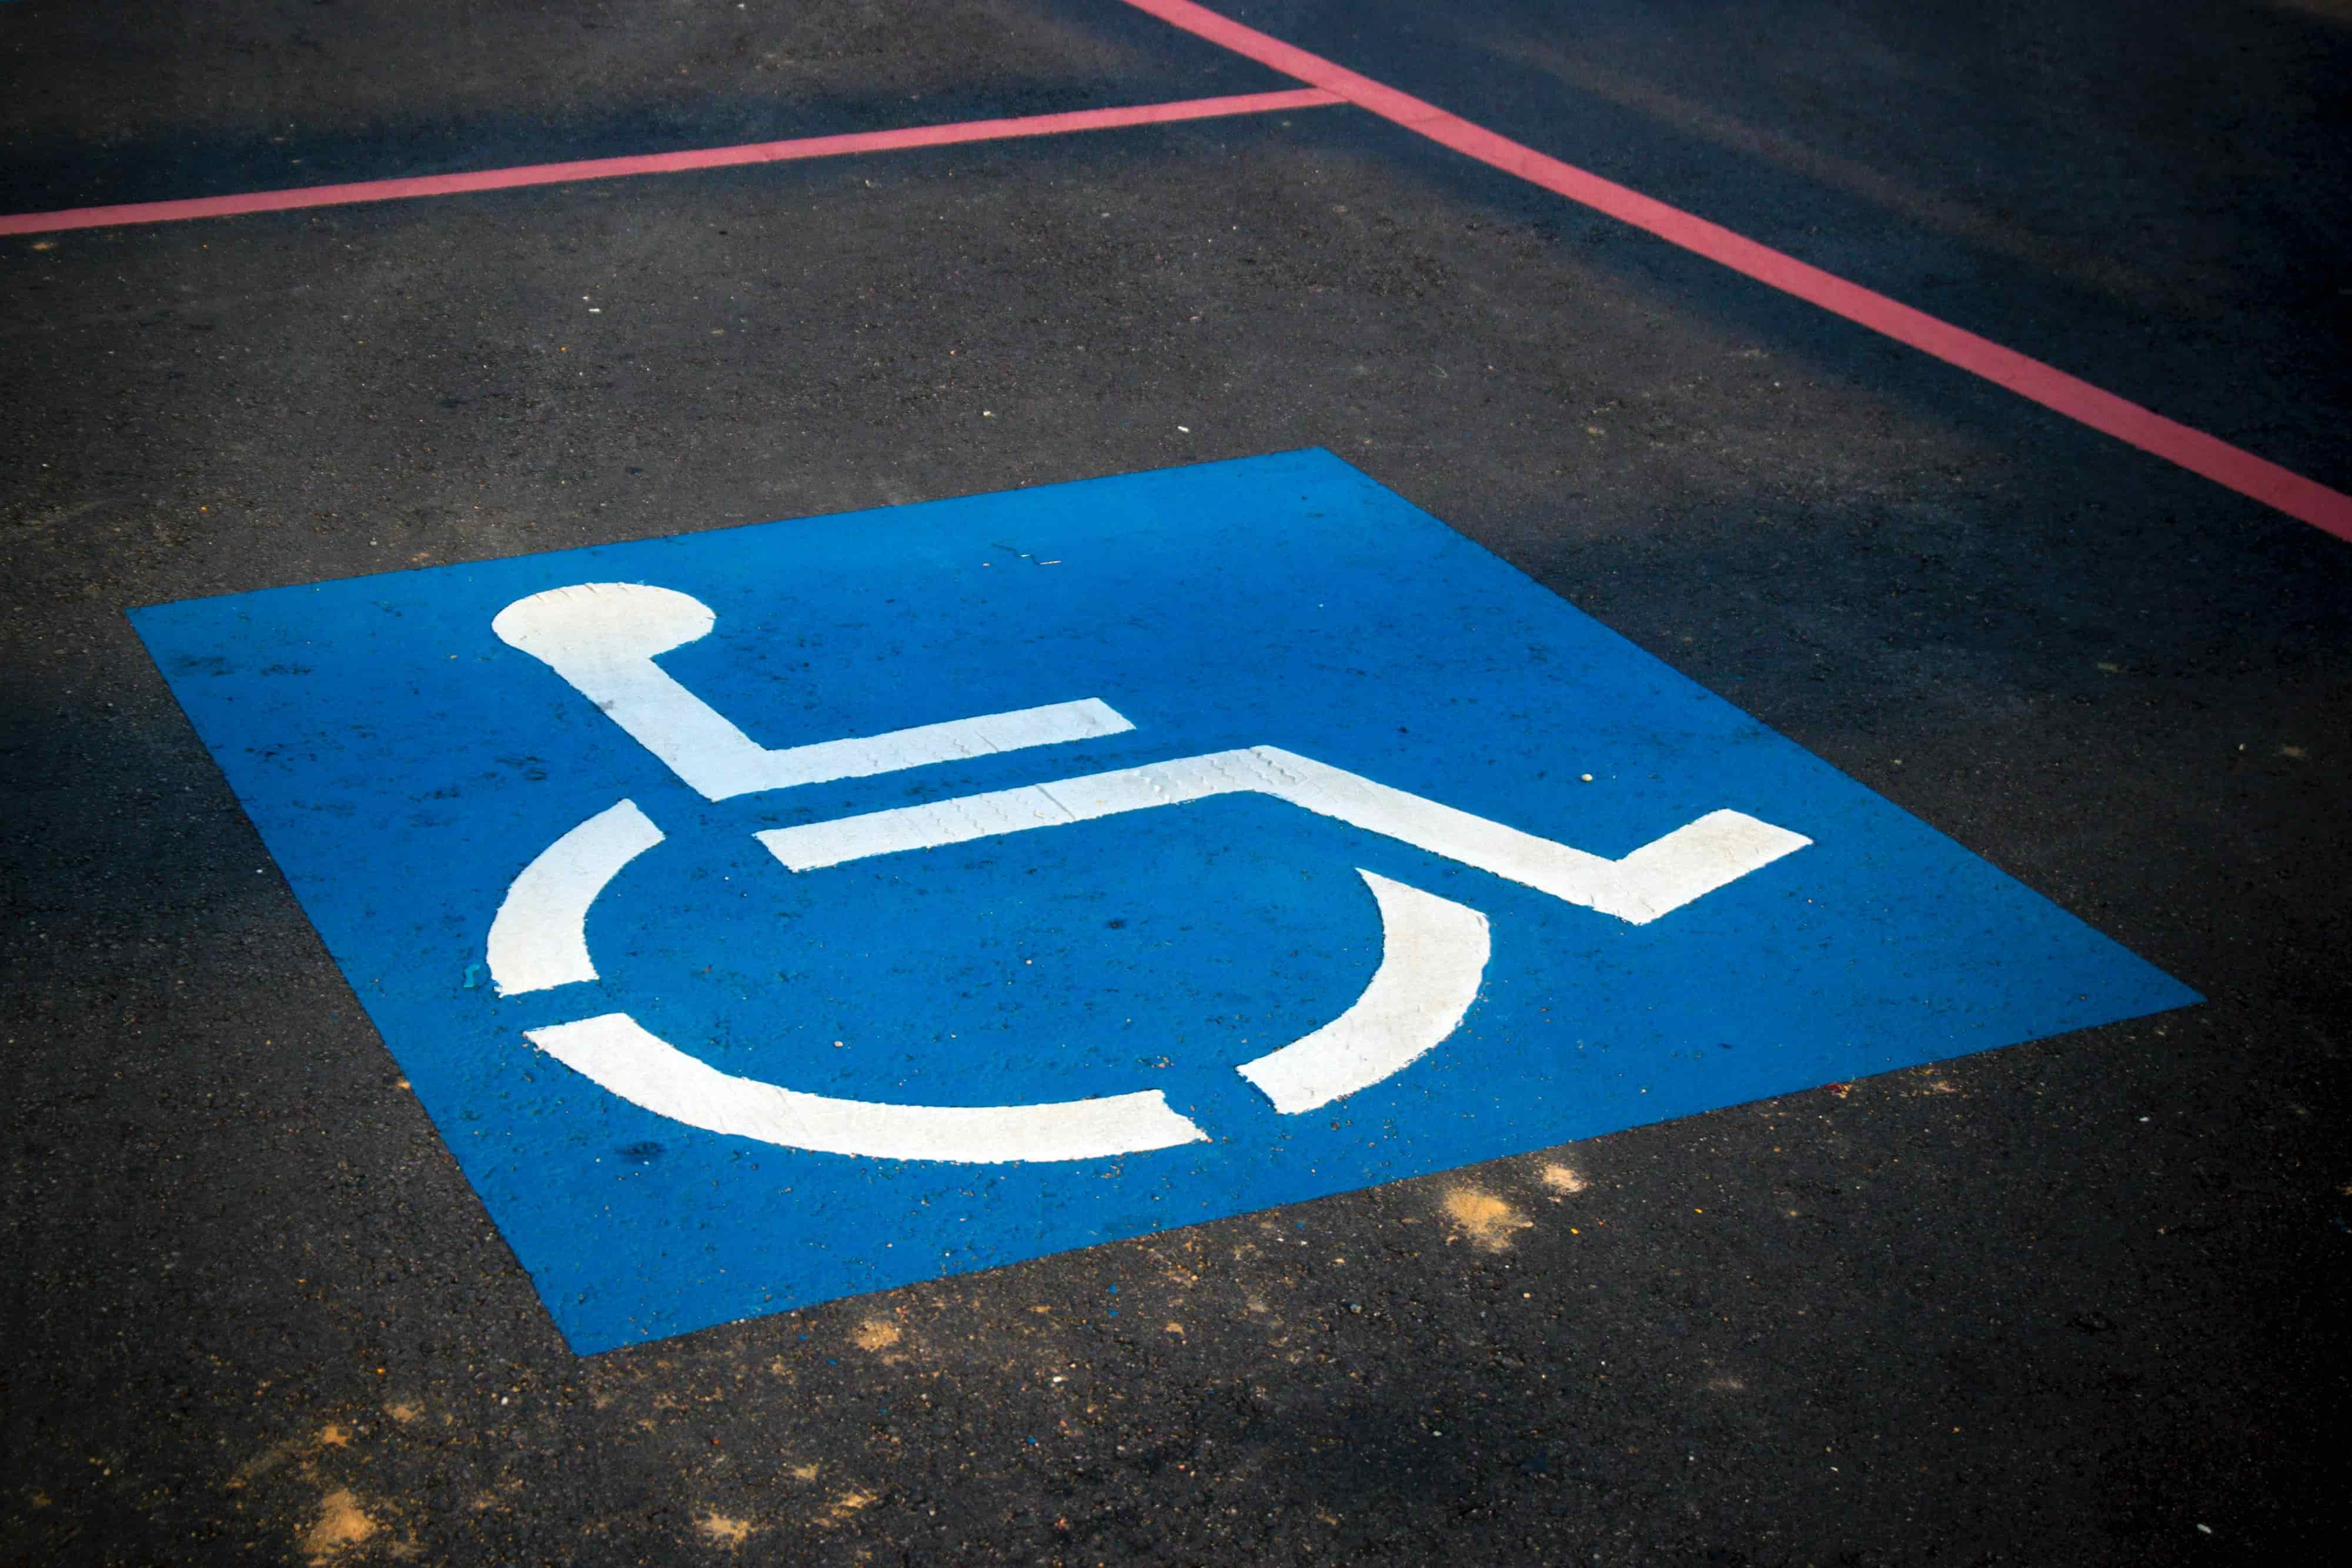 The symbol for a handicapped parking space with the blue square and white figure sitting in a wheelchair.